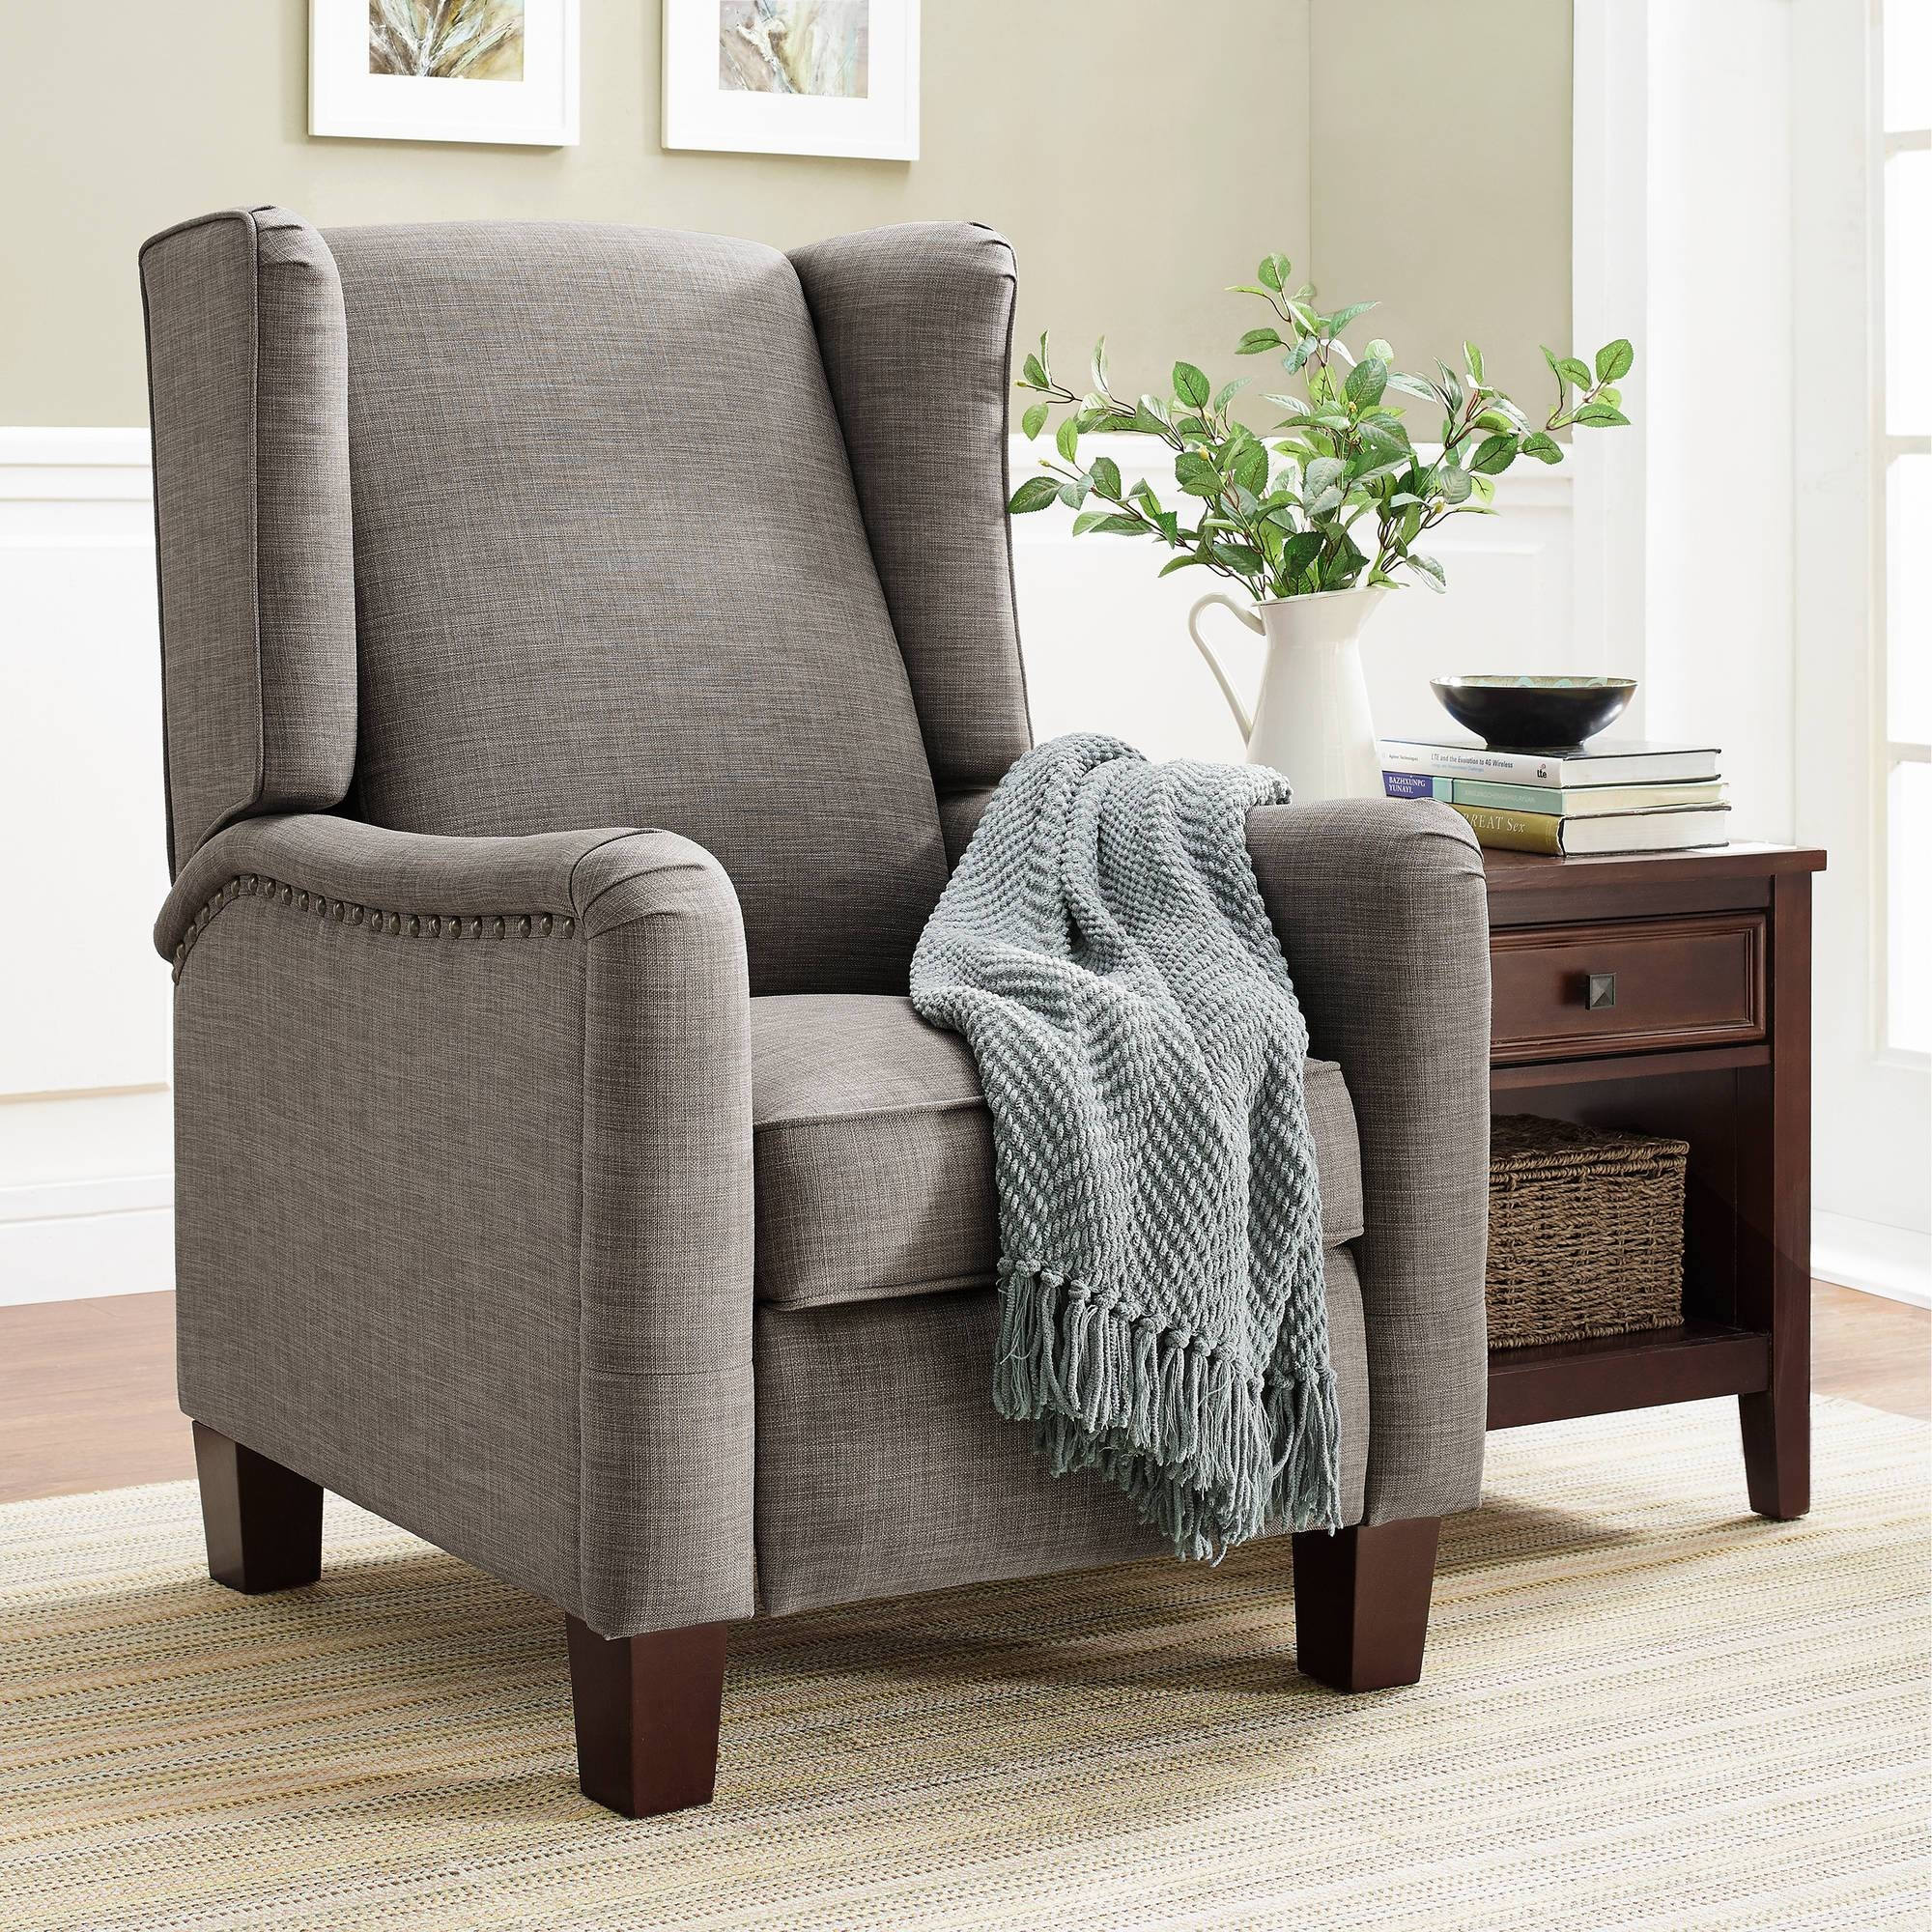 Living Room Furniture pertaining to Round Sofa Chair Living Room Furniture (Image 10 of 30)